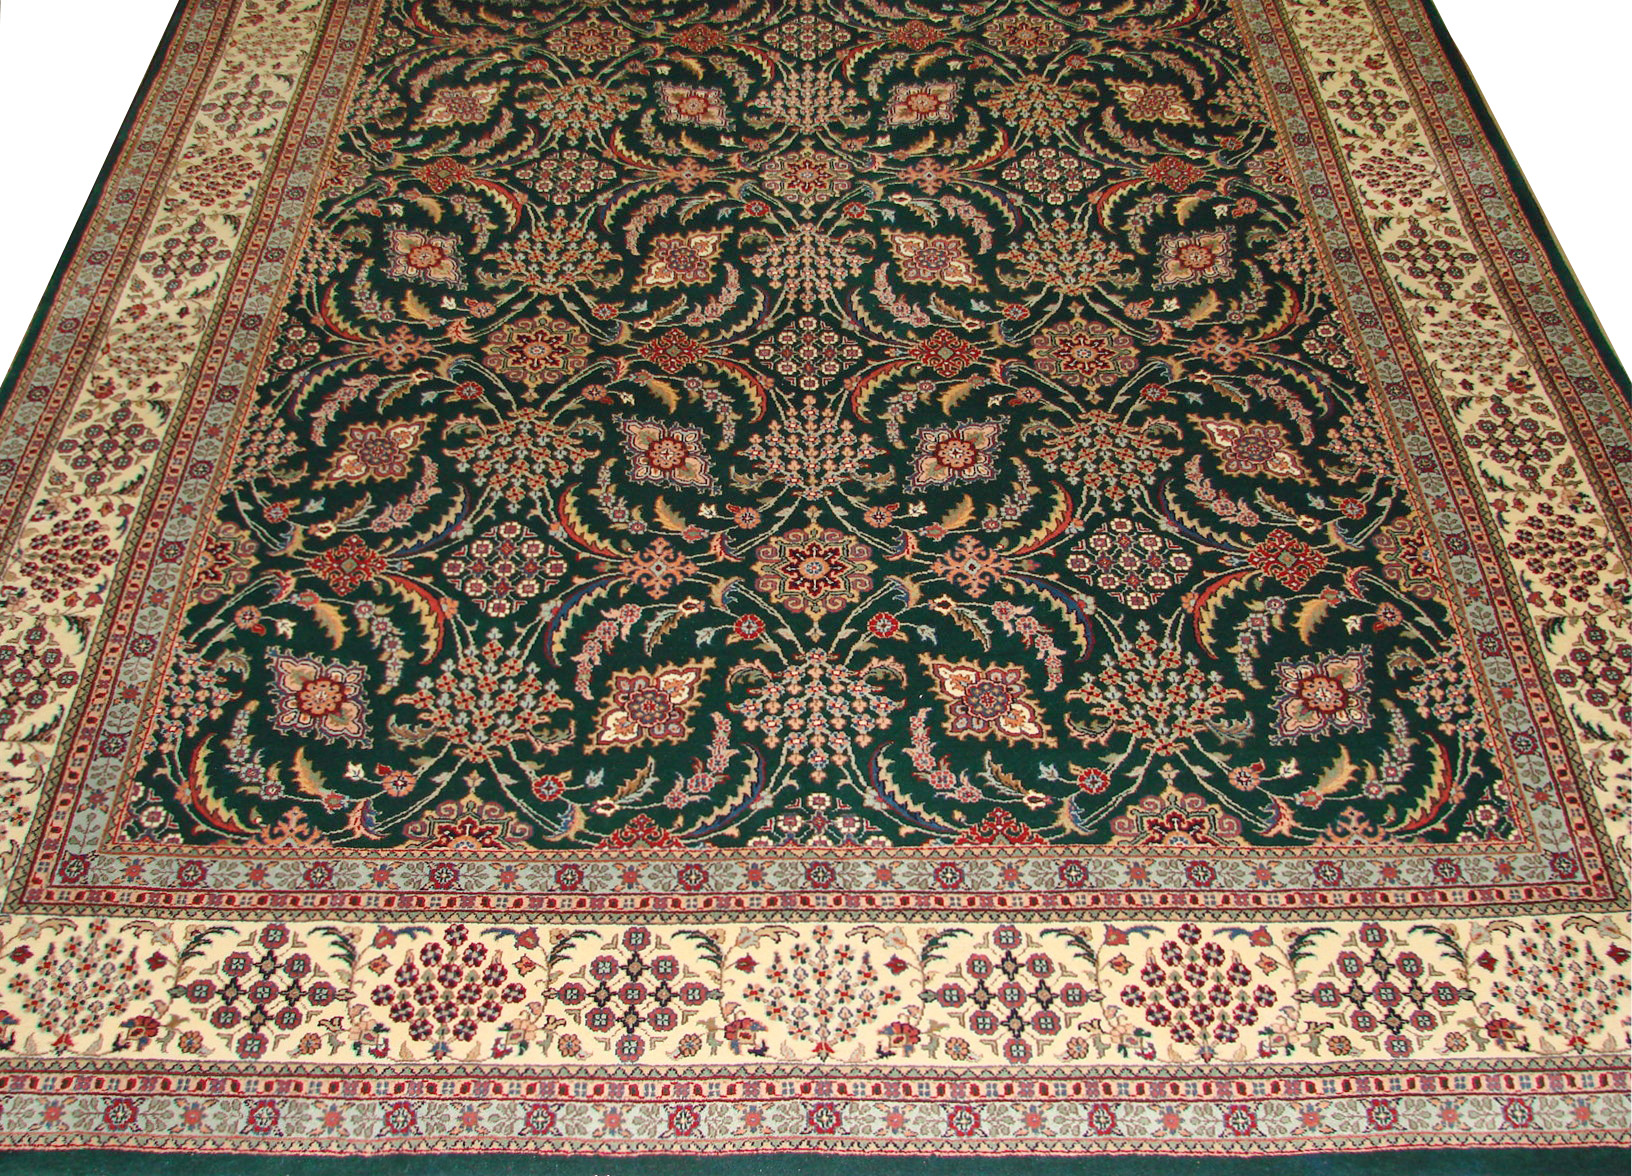 9x12 Traditional Hand Knotted Wool Area Rug - MR0776